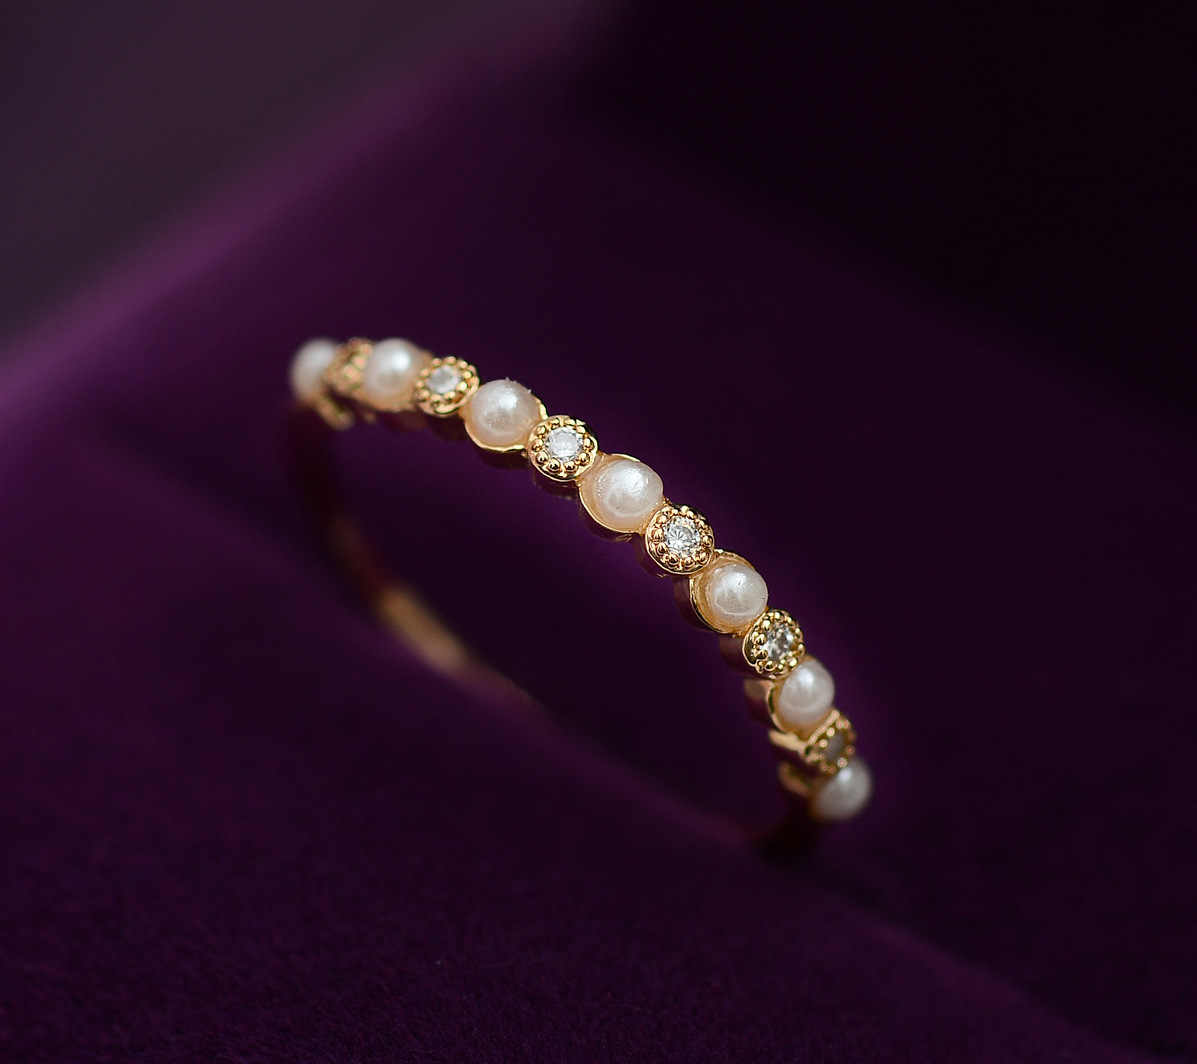 Imitation Pearls CZ Ring Shining Delicate 2018 Fashion Luxury Design Gift To Lover Rings for Women New Style Bague Femme